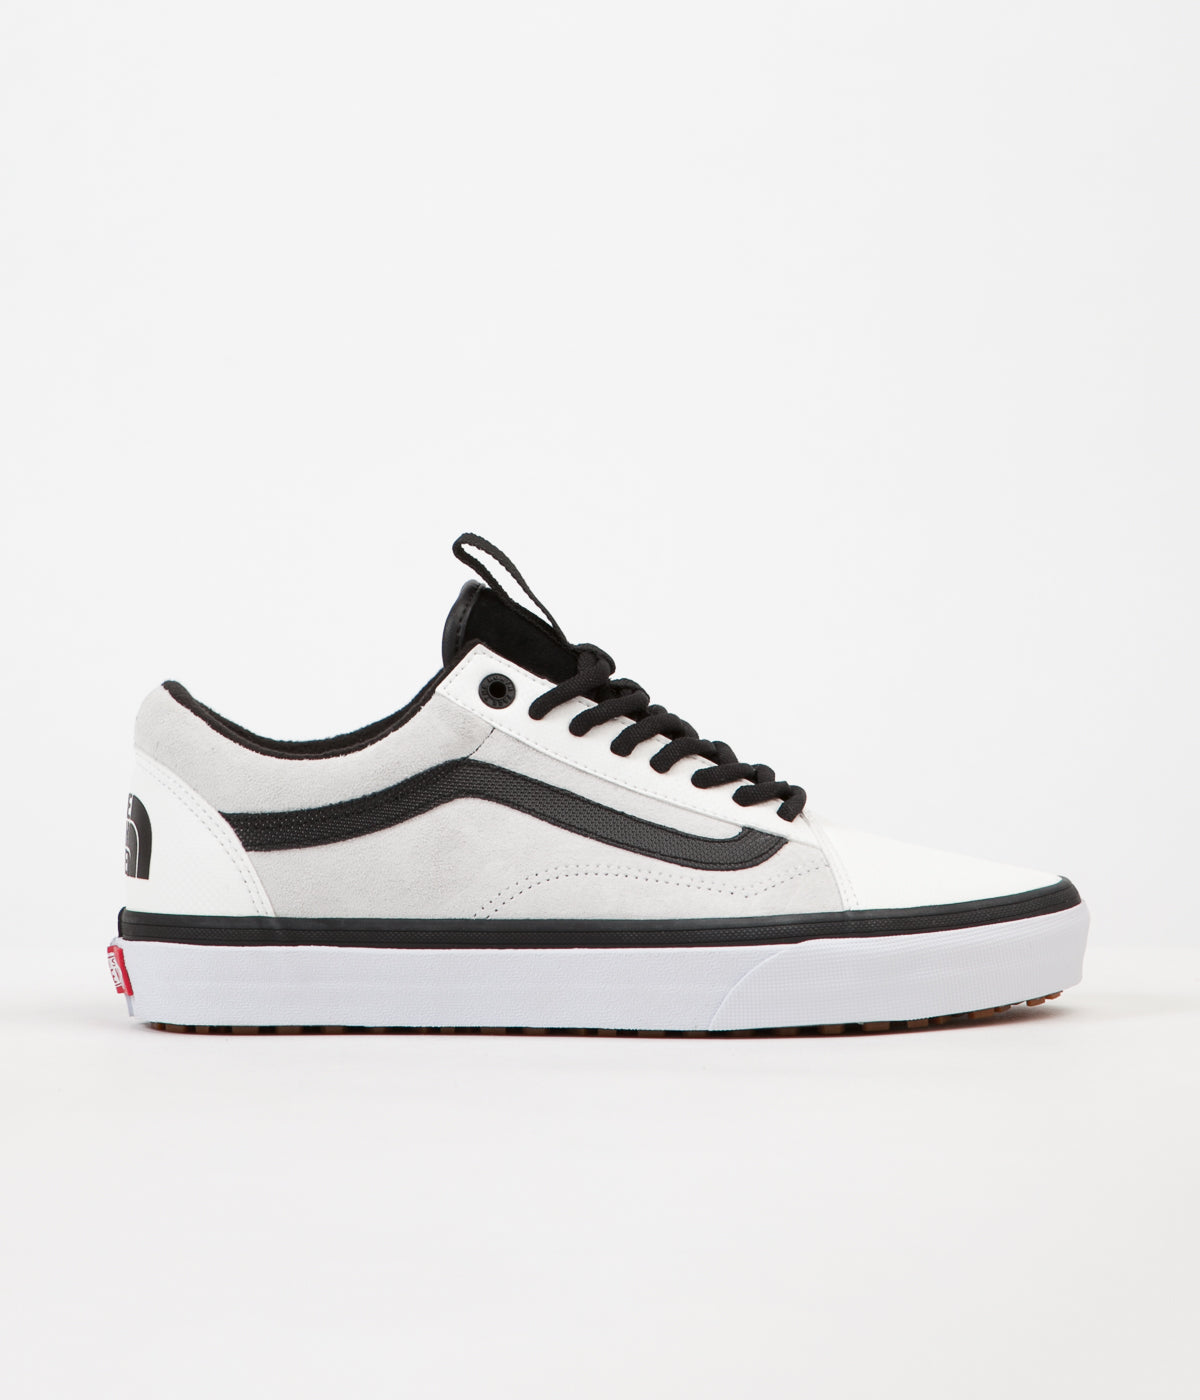 vans x north face shoes white